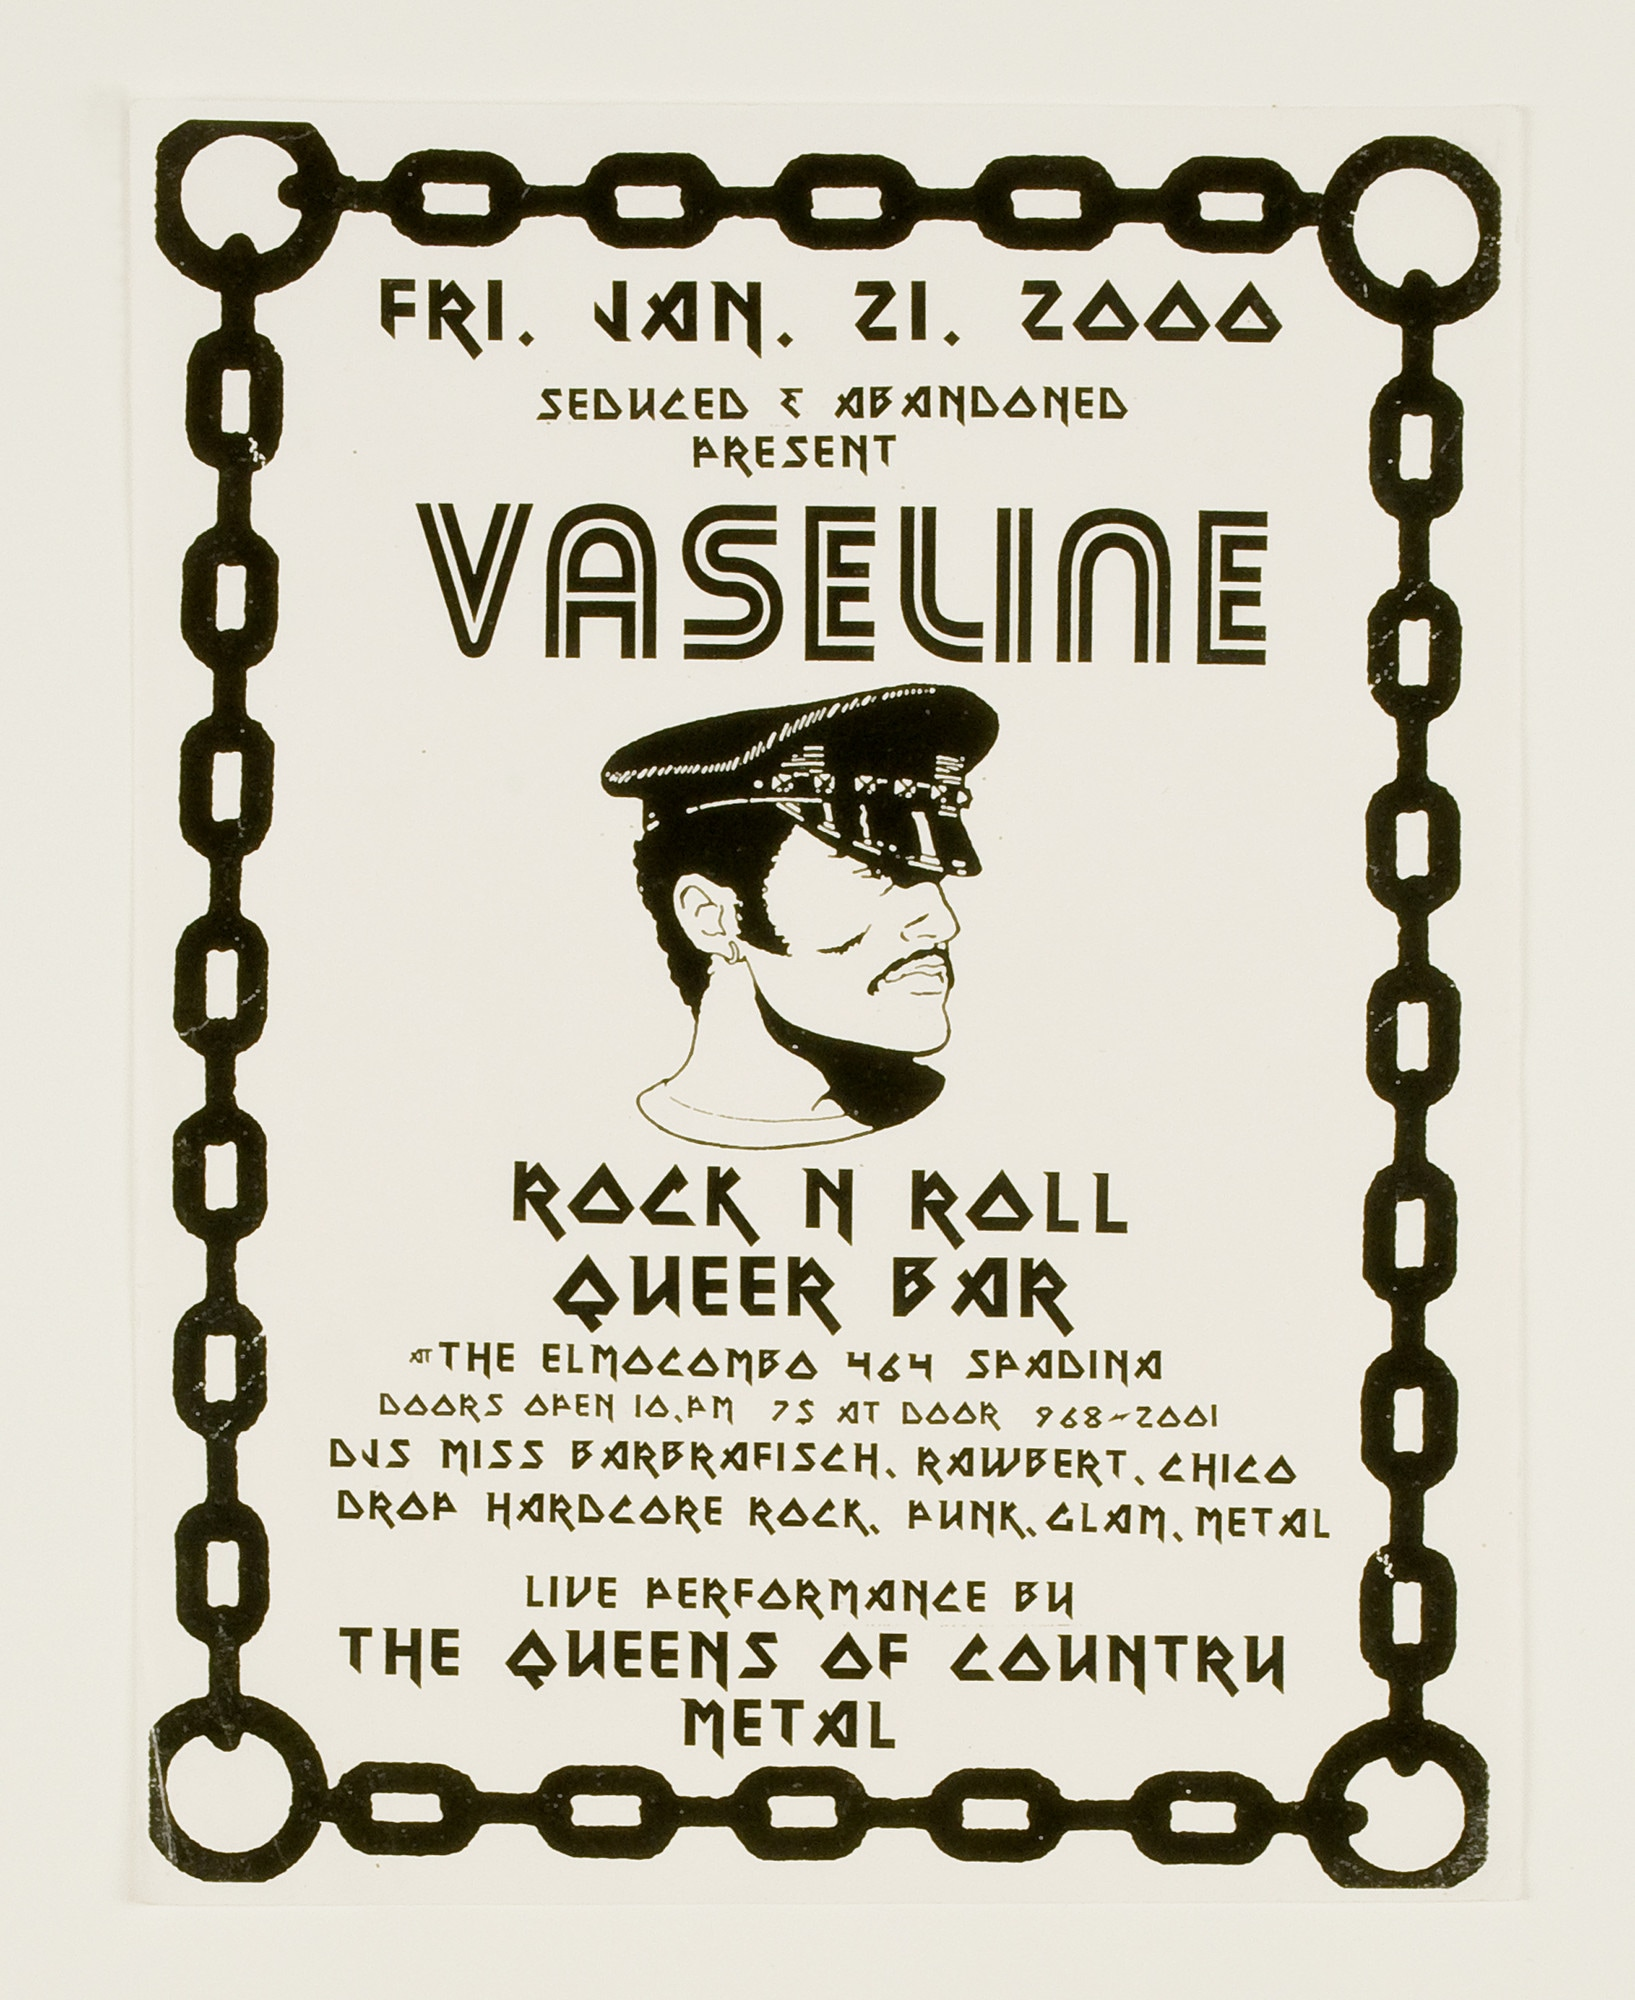 A hand-drawn flyer advertising a rock n roll queer bar at the El Mocambo. The text is bordered in chains and at the center, there is an illustration of a man in a motorcycle cap and moustache.